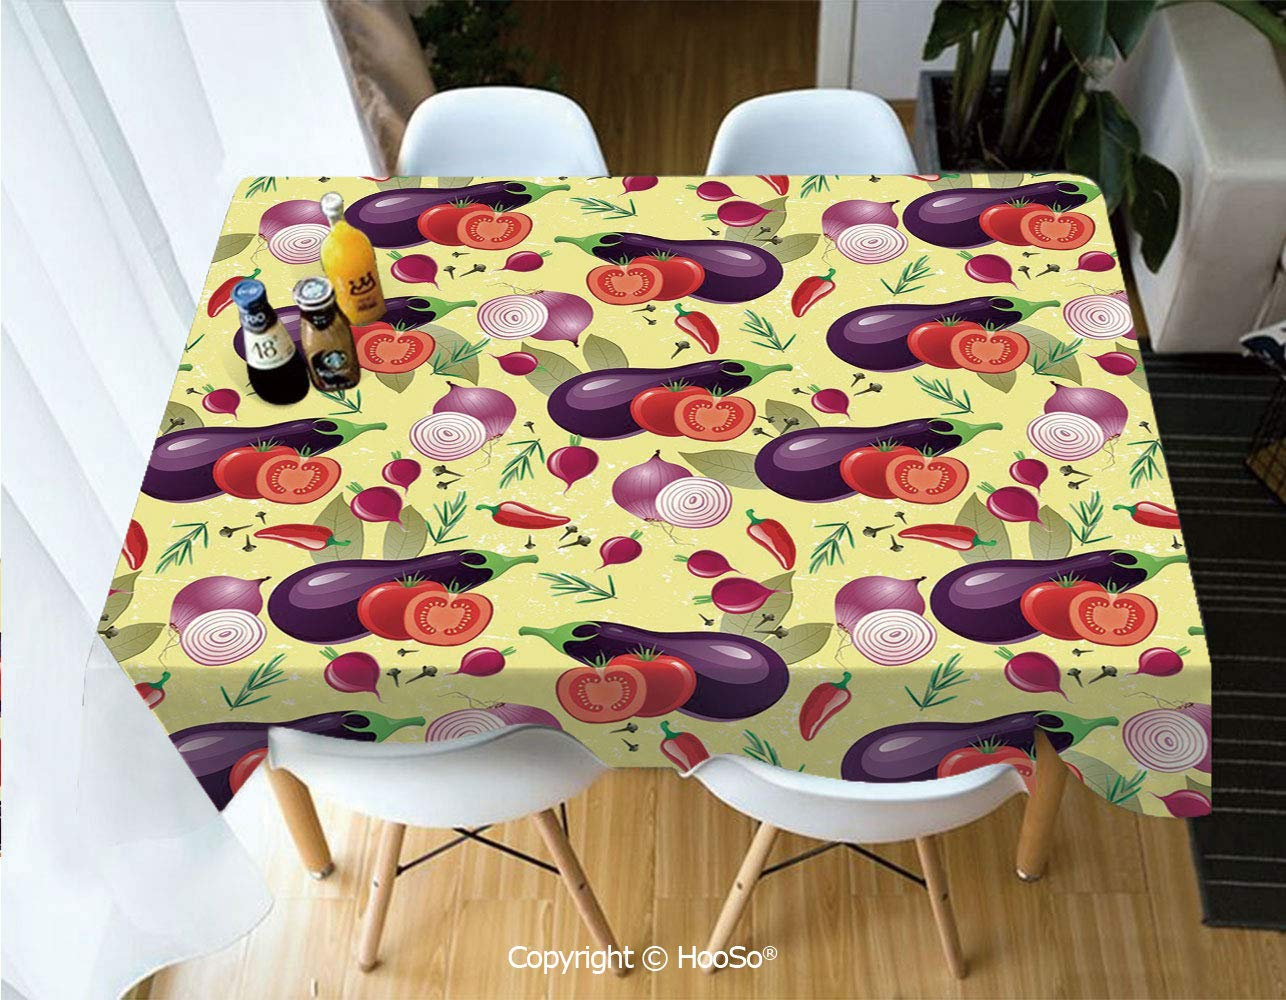 HooSo Premium Polyester Table Cover, Machine Washable, Durable Table Cloths for Wedding Reception Restaurant Banquet Party,Eggplant,Eggplant Tomato Relish Onion Going Green,60''X102'' by HooSo